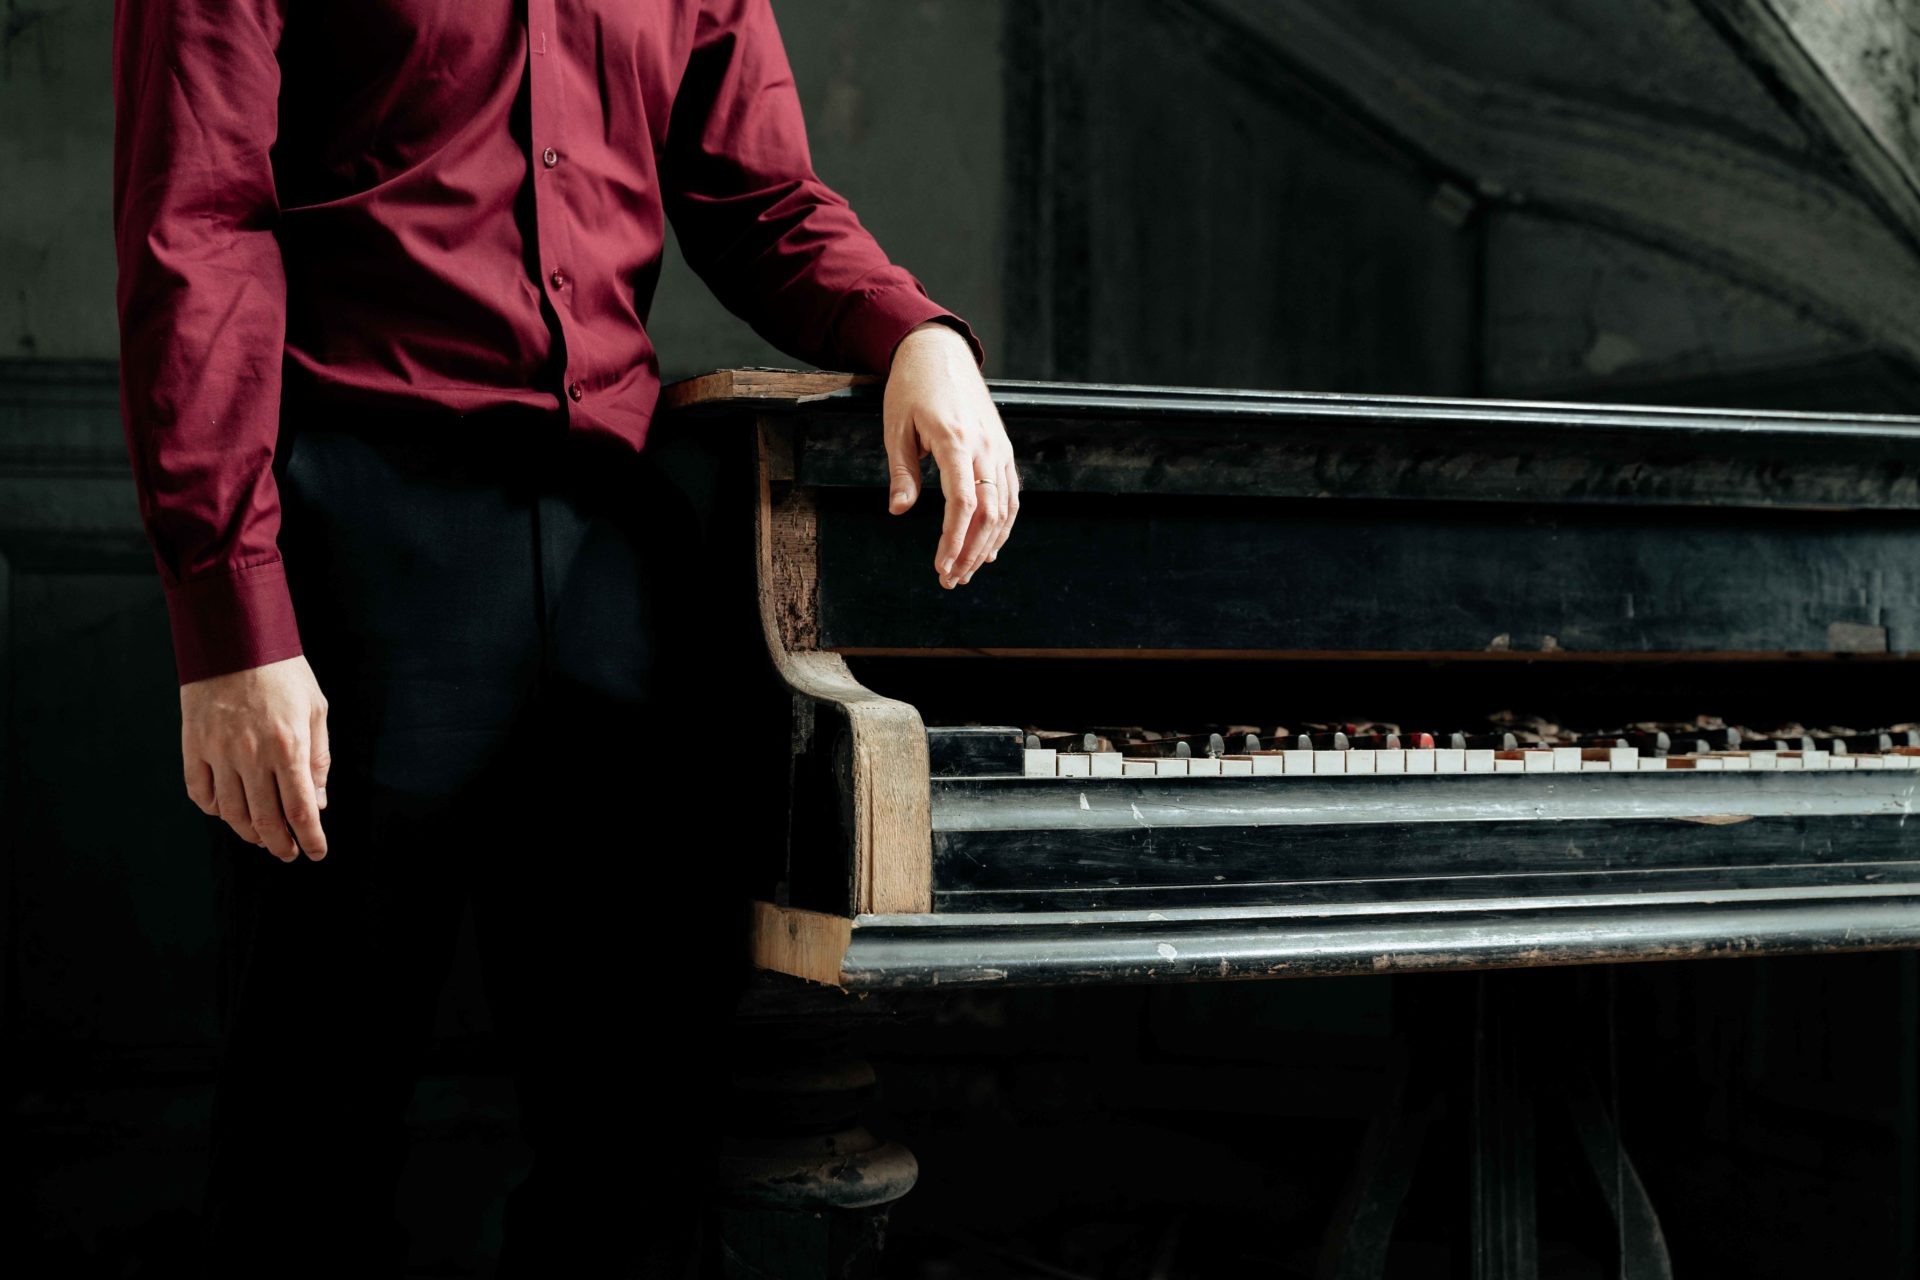 pianist abandoned pianos portrait photography romain thiery